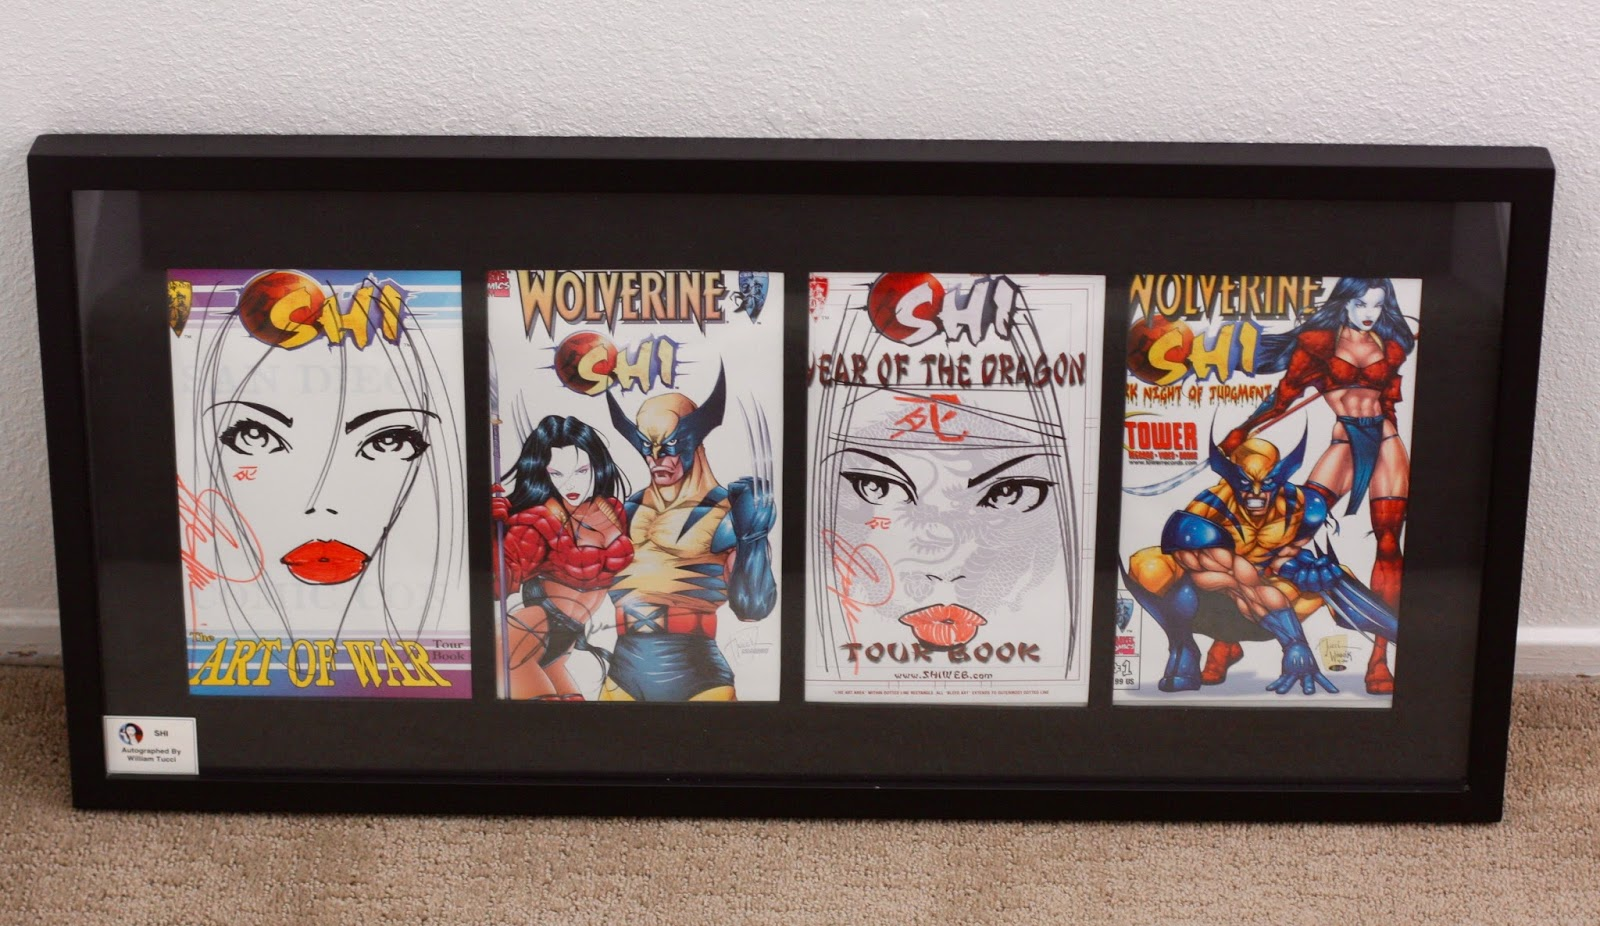 Marvelous COMIC BOOKS 4 PANEL FRAME DISPLAY WALL ART DIY